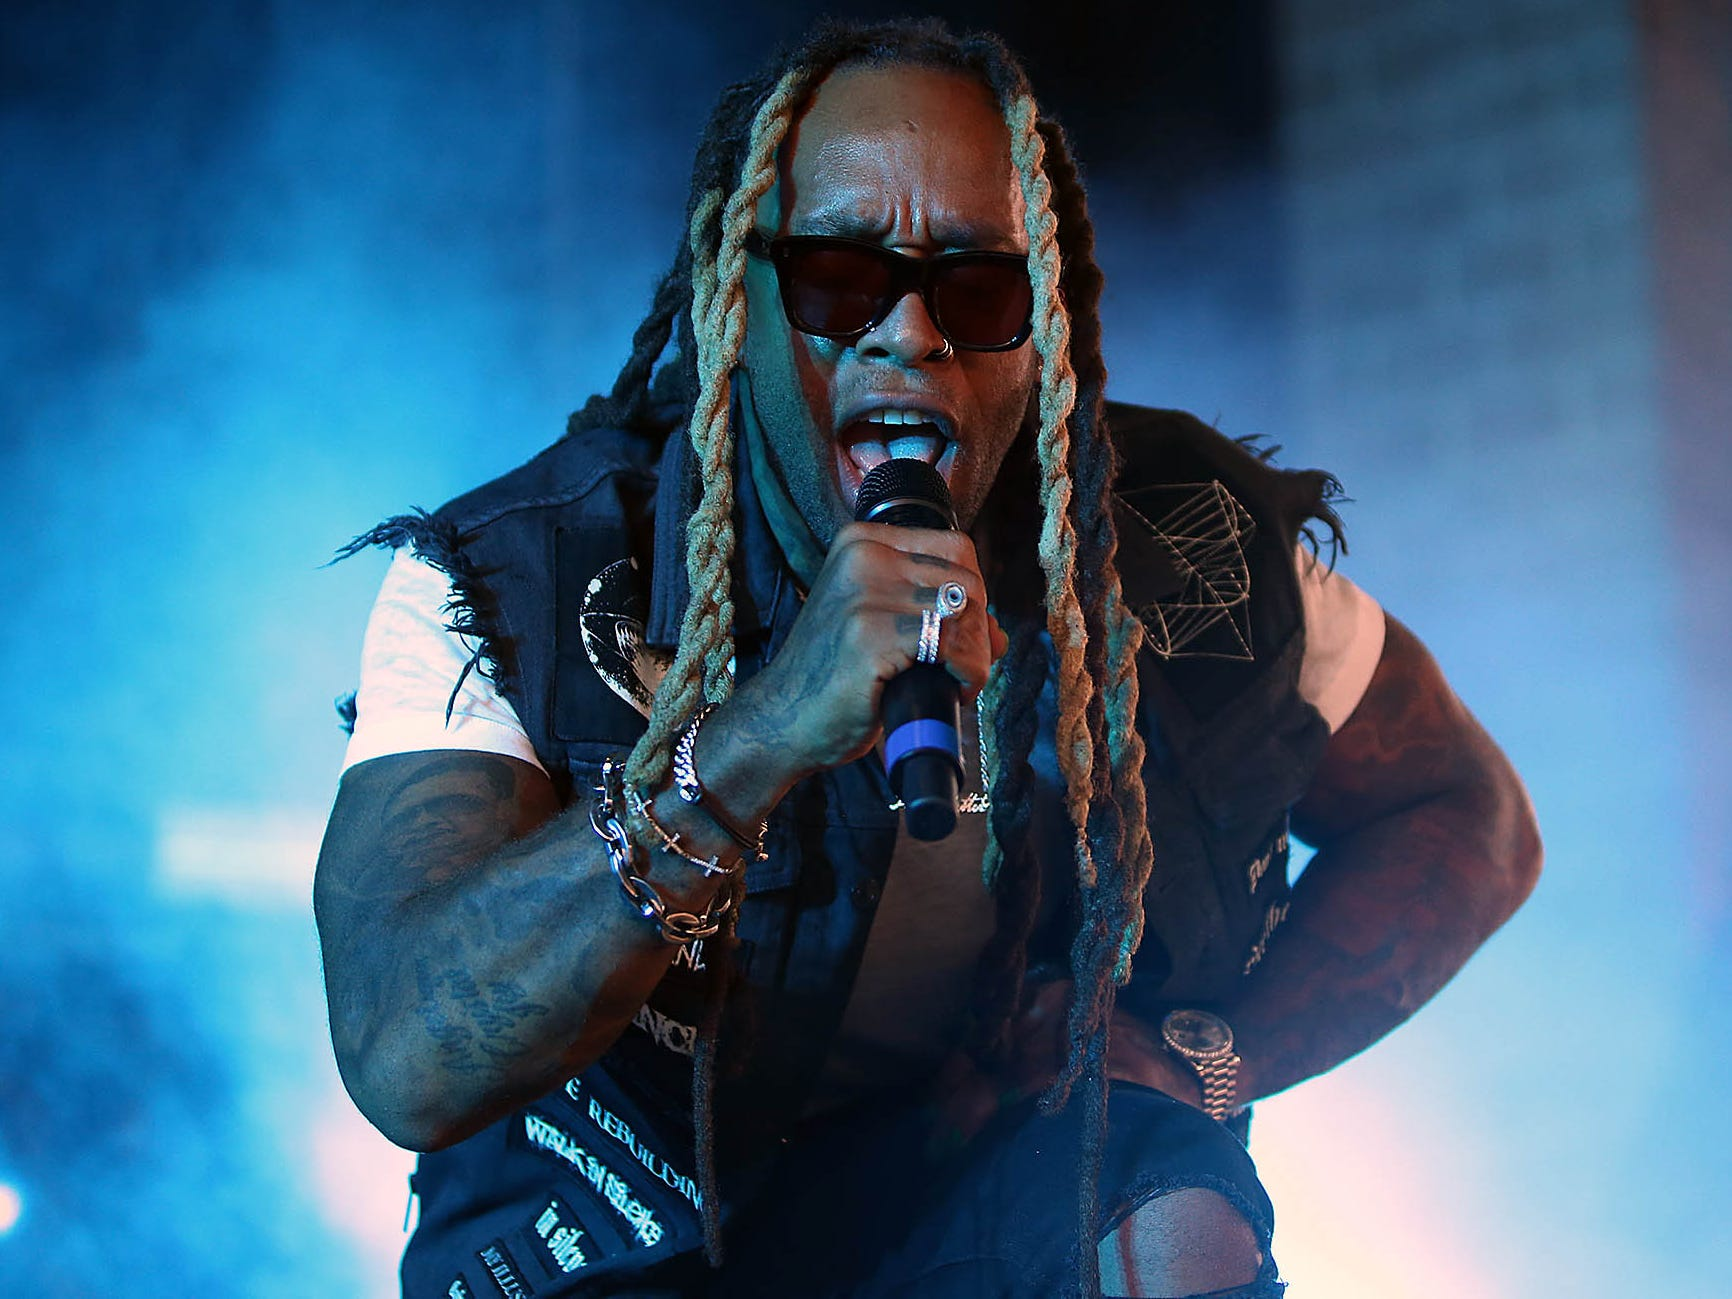 Ty Dolla $ign performs during G-Eazy's The Endless Summer Tour at Ak-Chin Pavilion in Phoenix on Aug. 3, 2018.